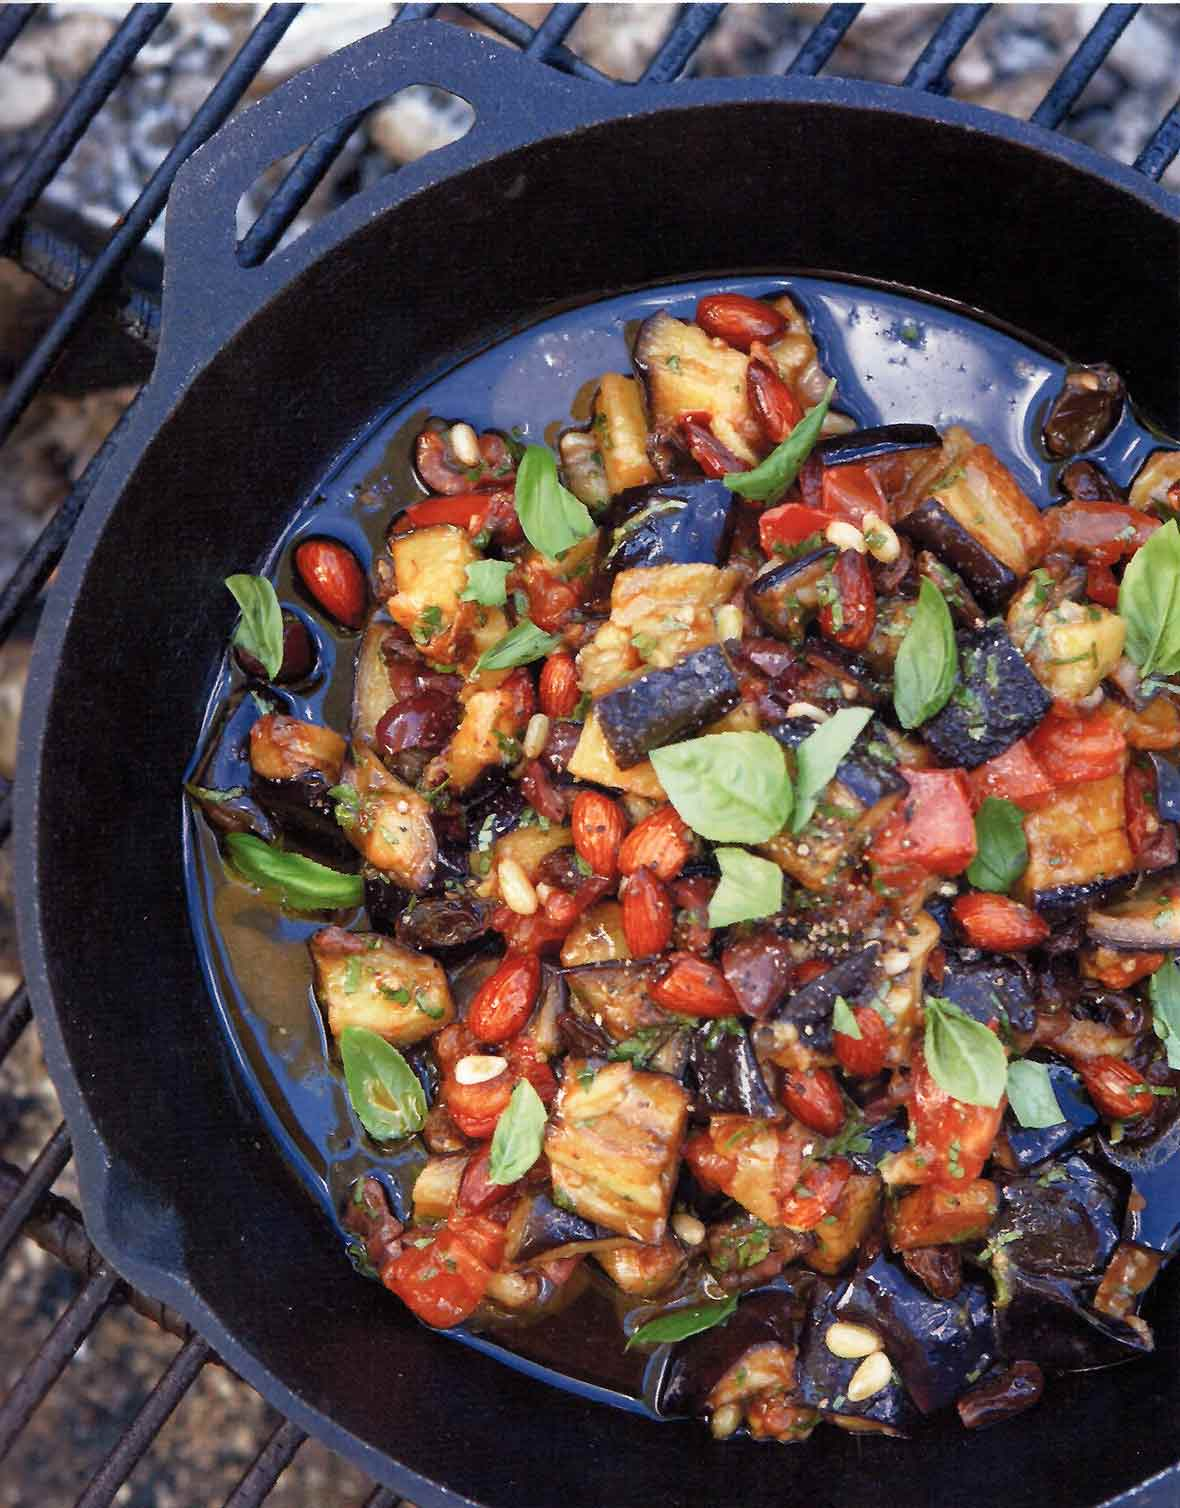 Skillet on a grill filled with eggplant caponata--chopped eggplant, onions, fennel, onions, almonds, basil